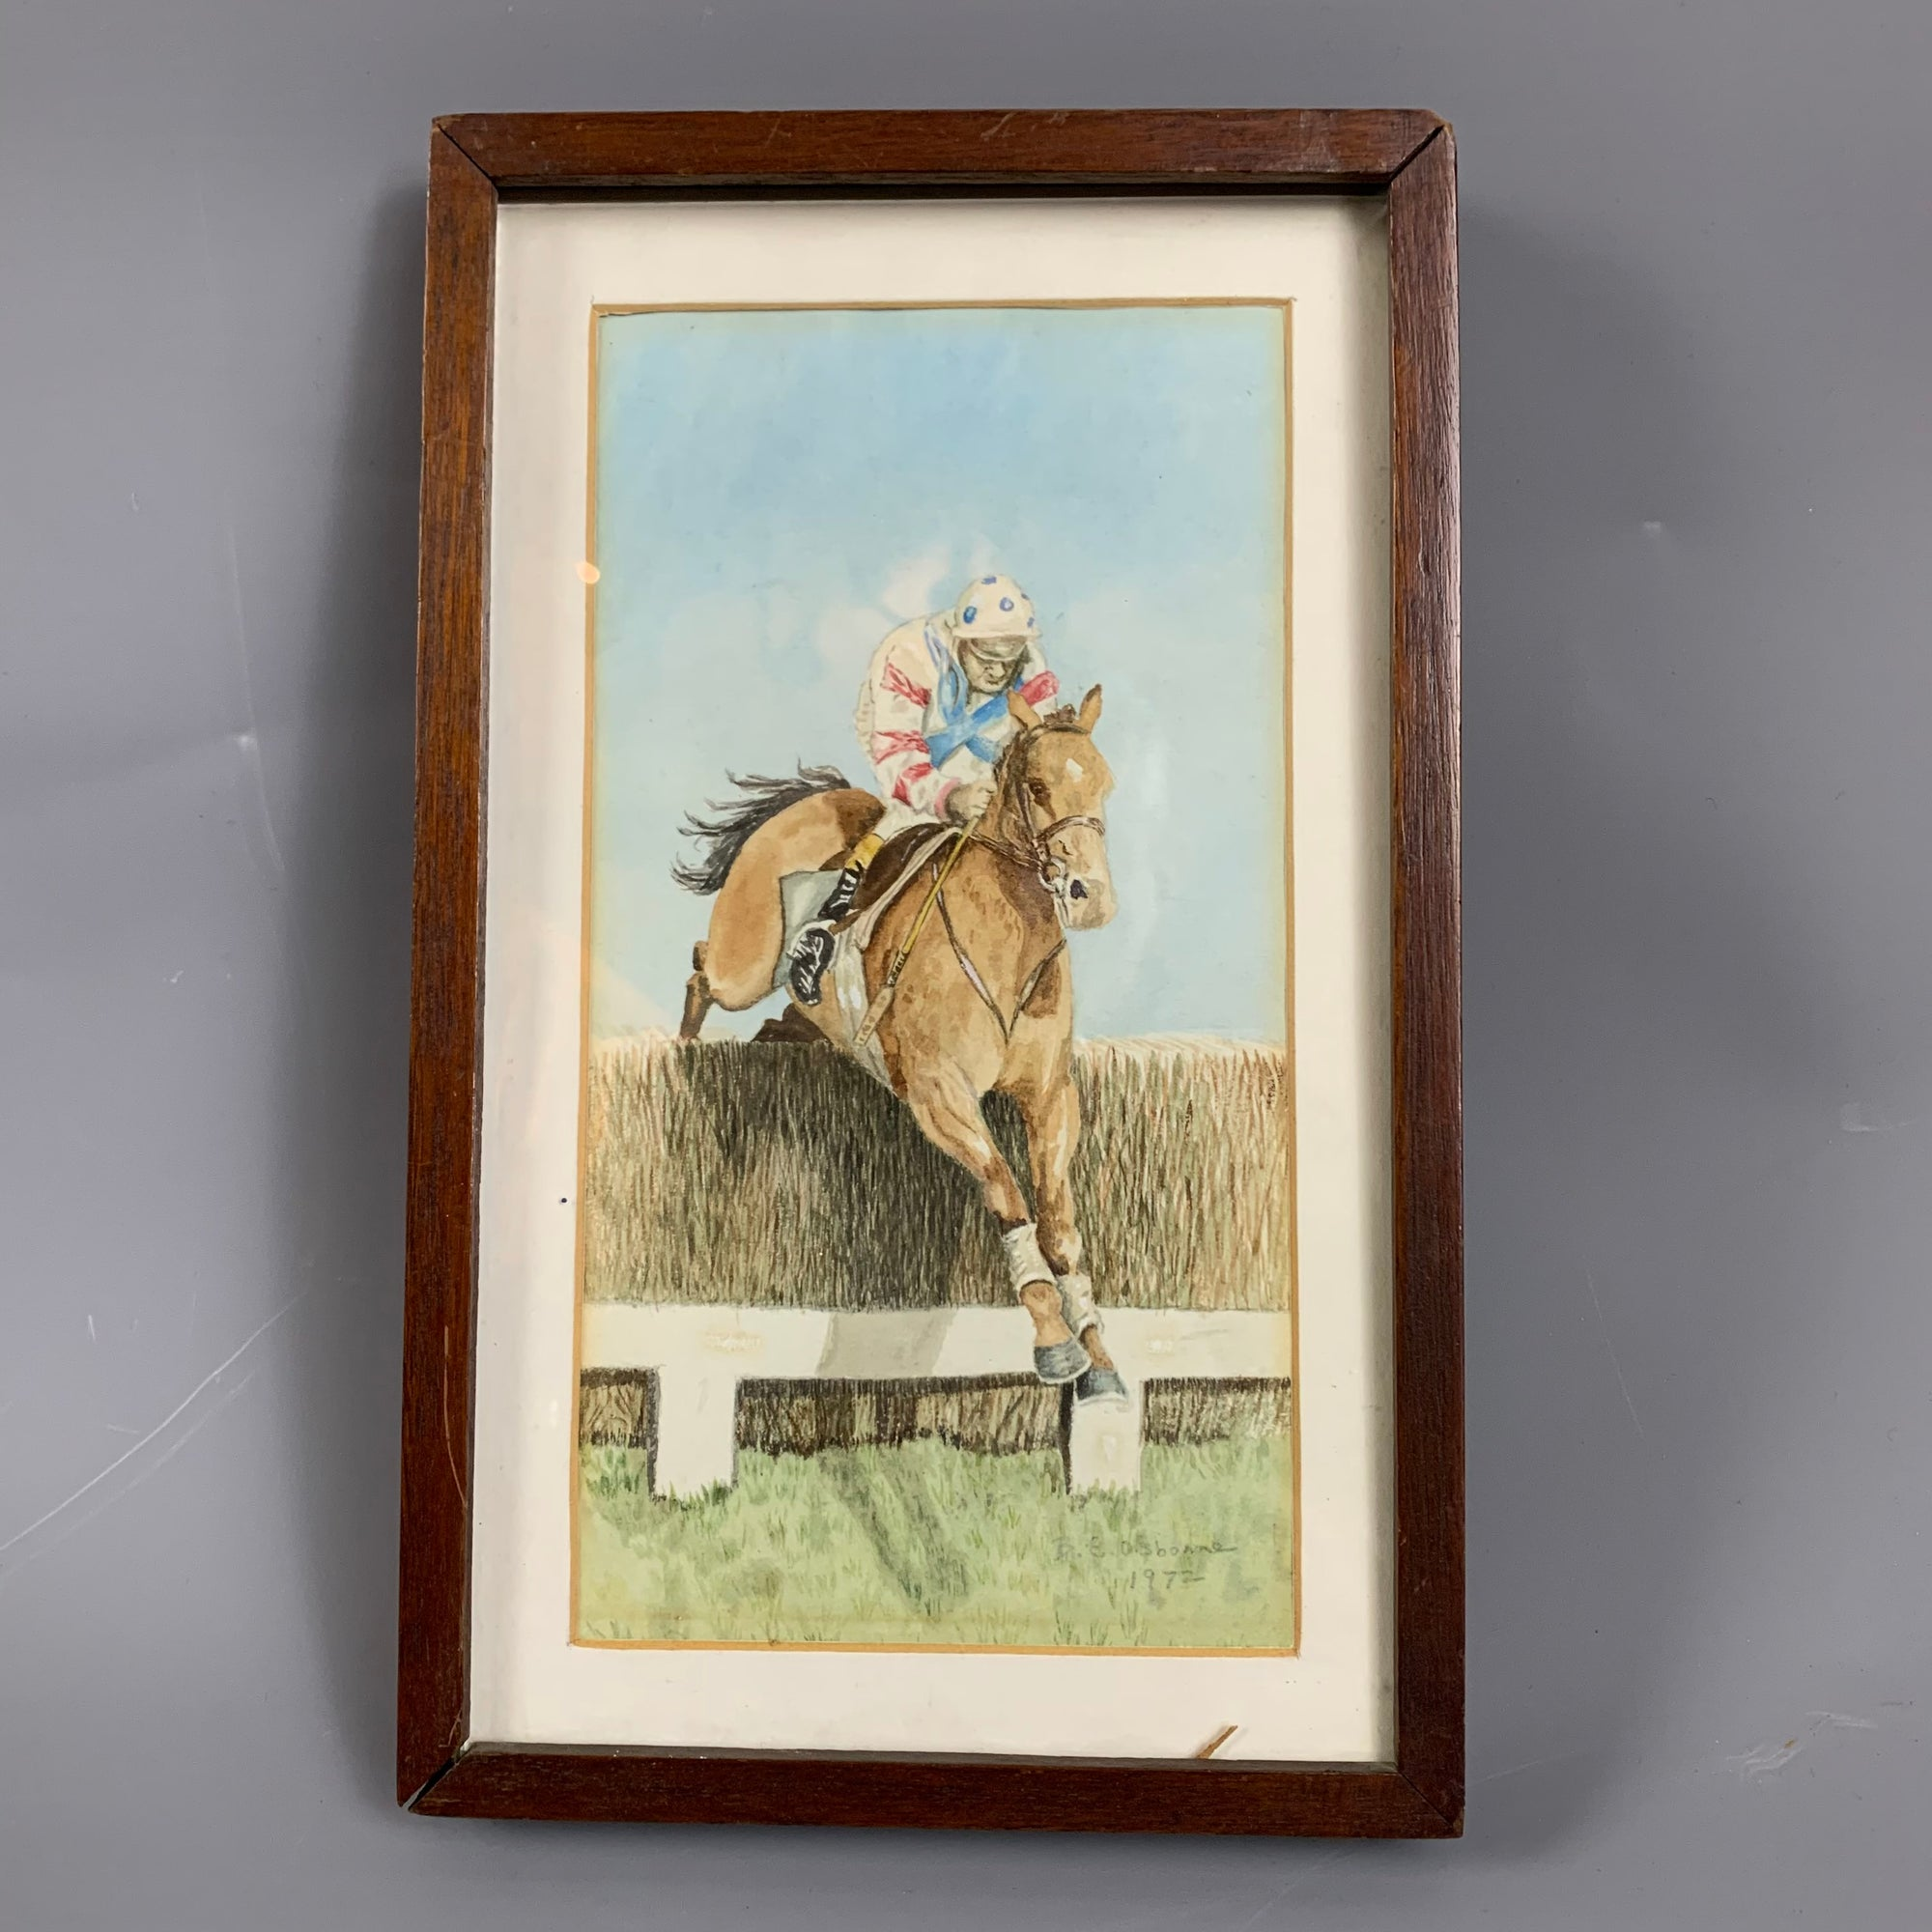 Wooden Frame Watercolor Painting On Canvas Title Jockey On Horse By Biddlecombe Vintage c1972